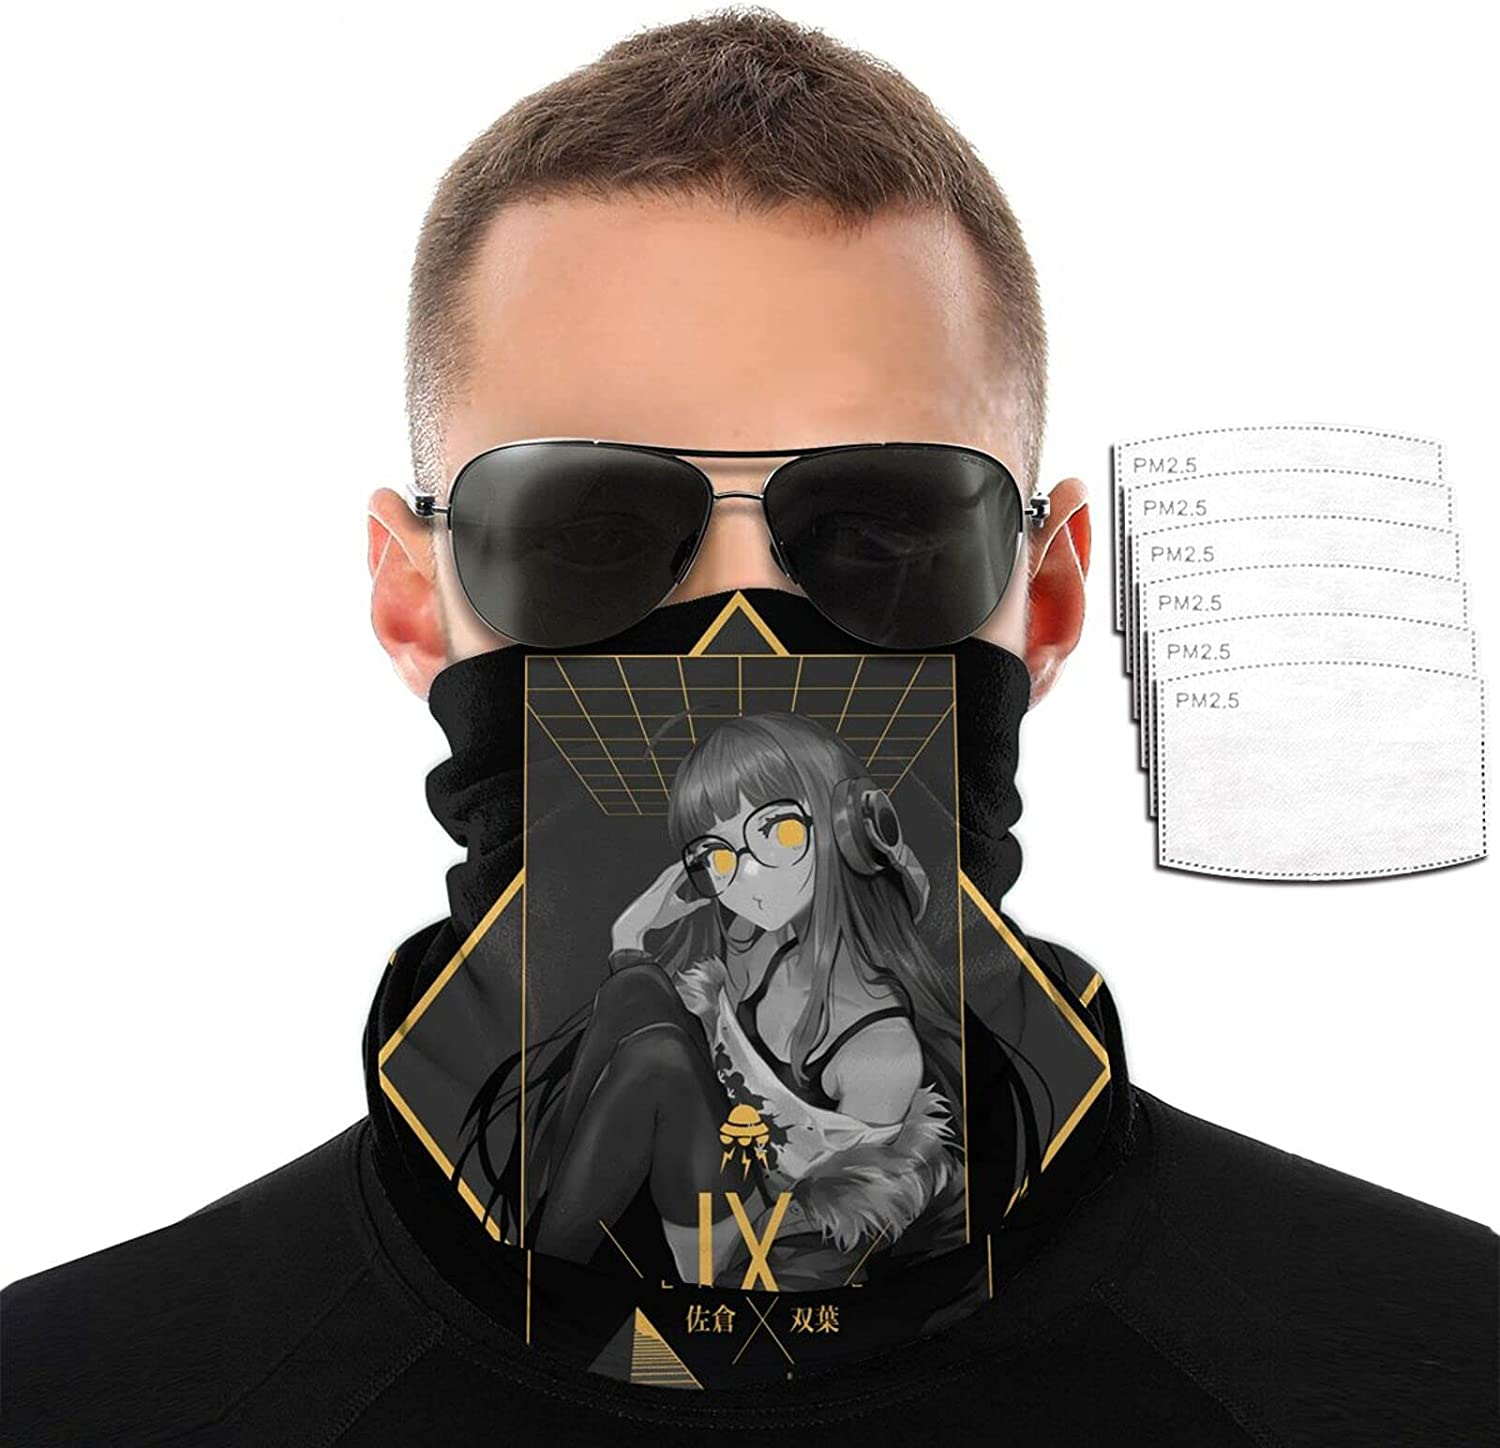 Anime Persona Overseas parallel import regular item 5 Variety Face Towel P Store Funny Scarf Sun 3D Printing